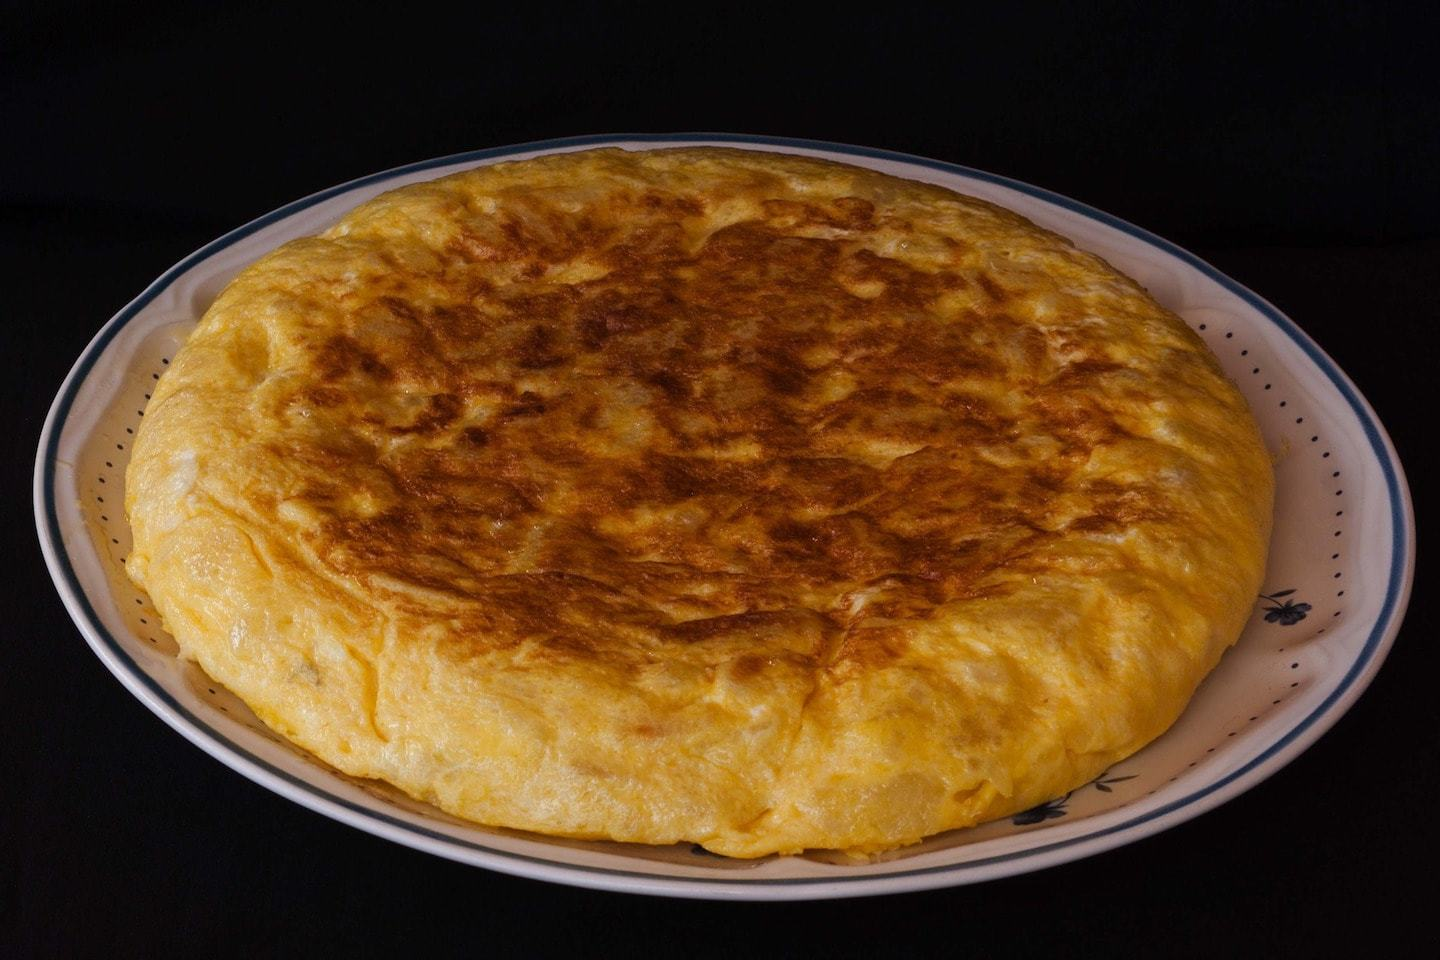 spanish omelet with eggs and potatoes